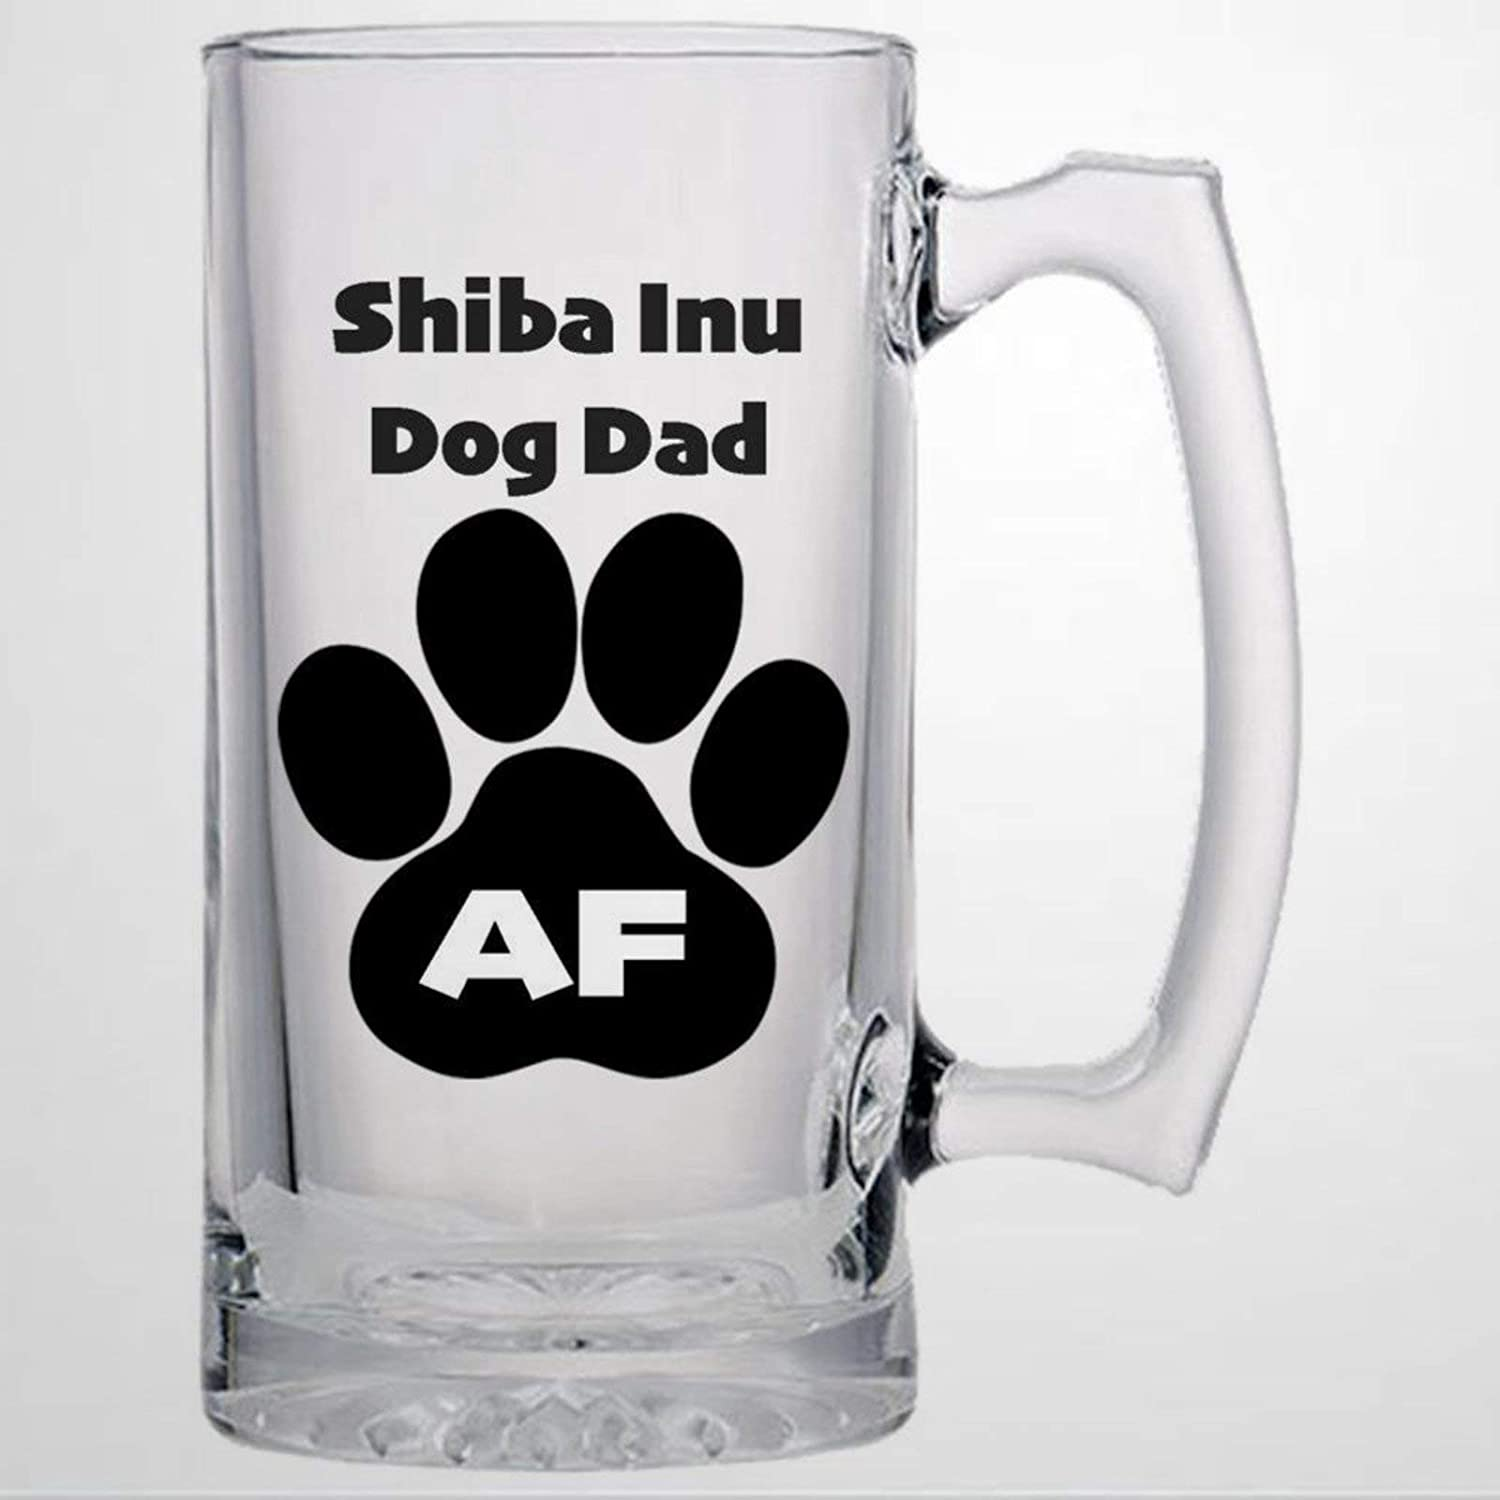 Pint Beer Glasses Stein 16oz, Shiba Inu Dog Mug, Beer Lover Present for Men, Dog Memorial Present, Personalized Beer Mug Clear Drinking Mug for Bar Party Dining